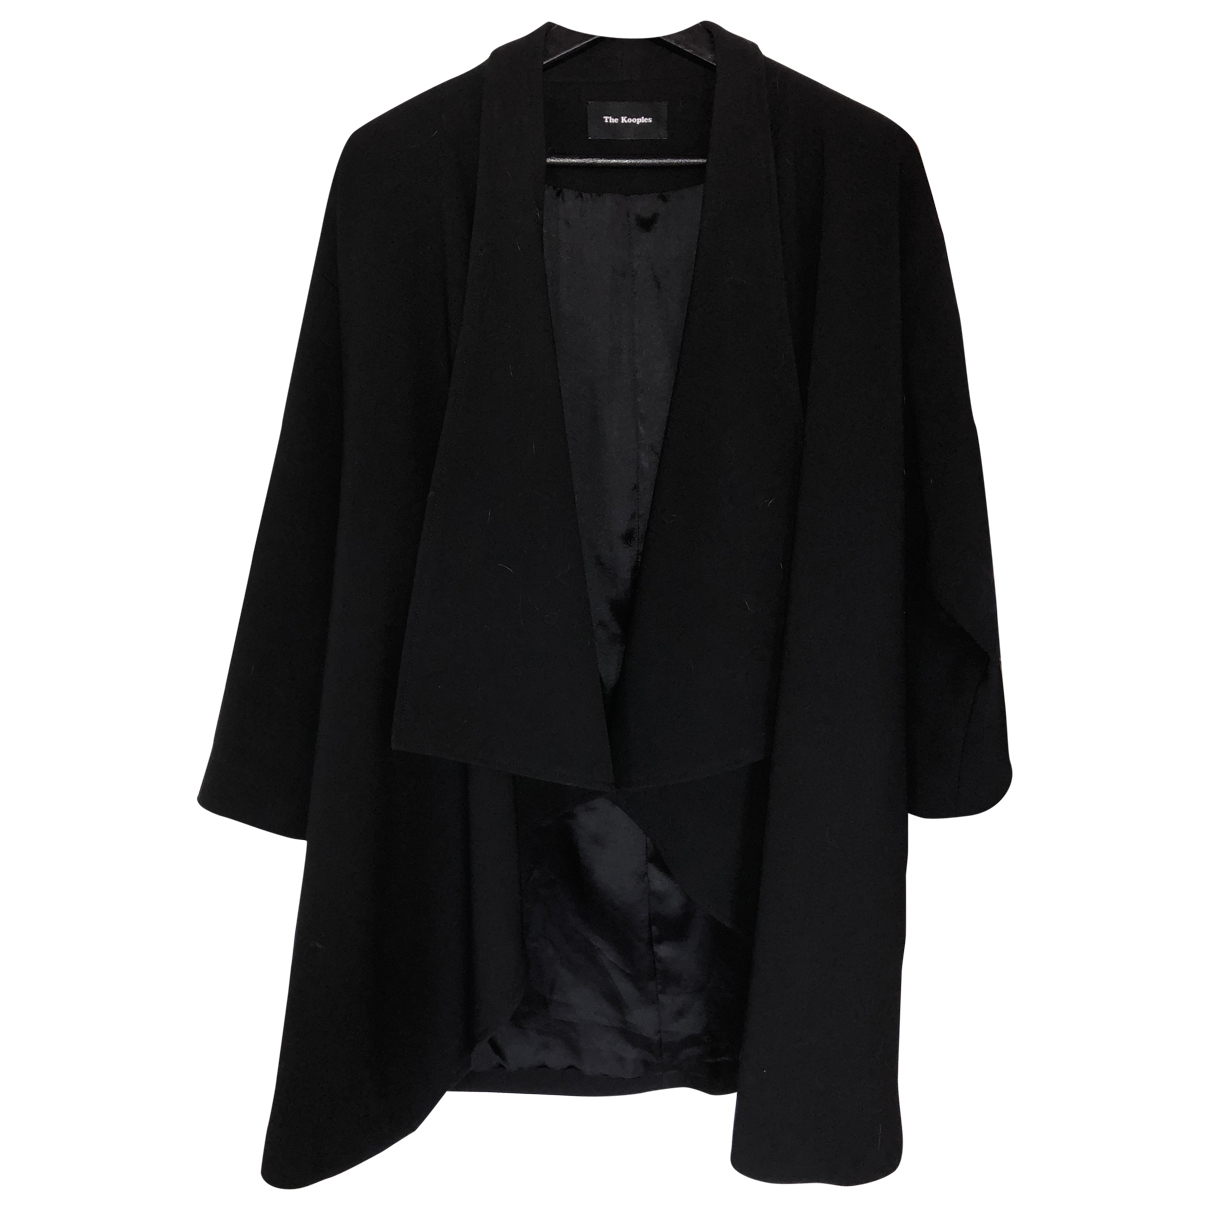 The Kooples \N Black jacket for Women 32 FR